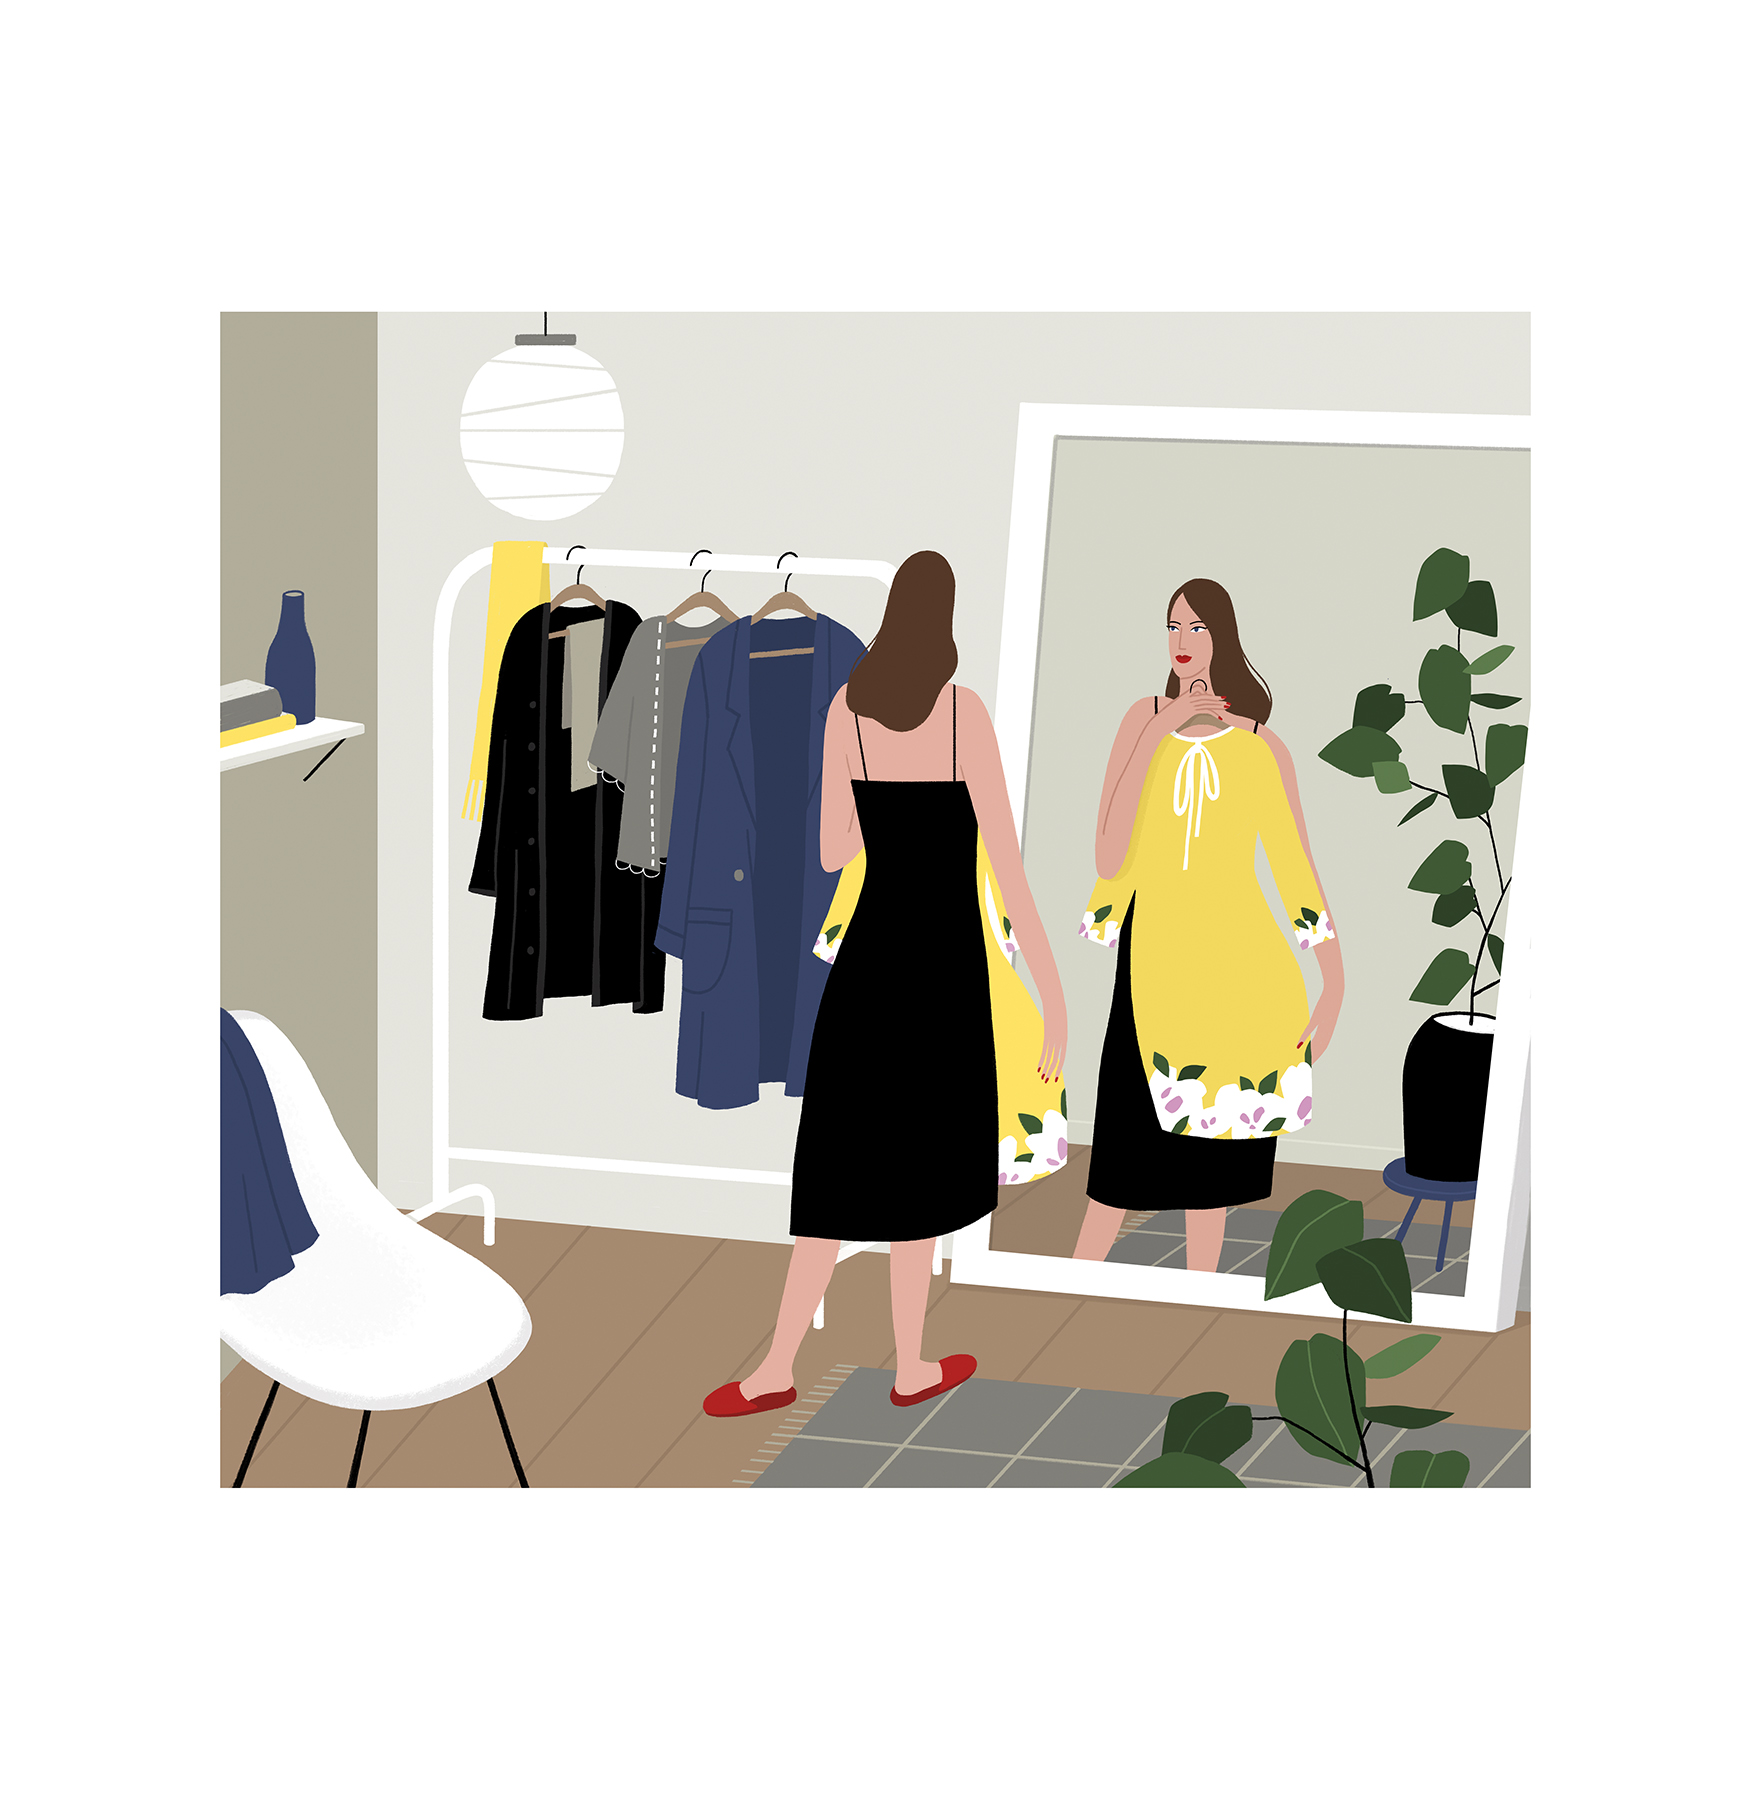 Illustration: Woman looking at dress in mirror at clothing store